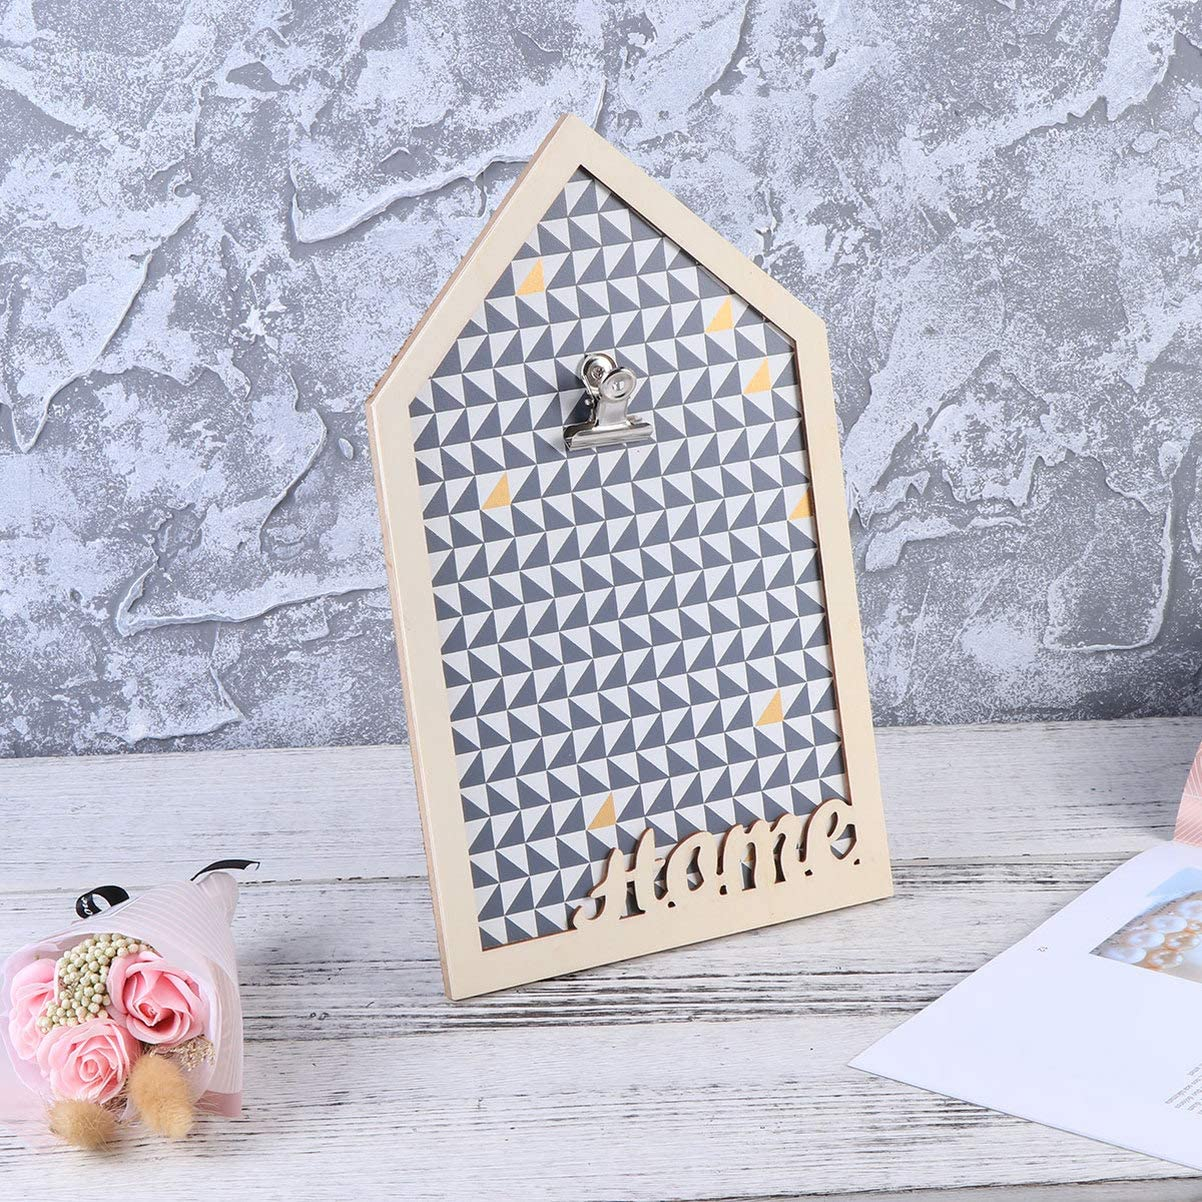 Cabilock Wall Mount Message Board Wooden Note Board Hanging Message Card Holder for Home Office